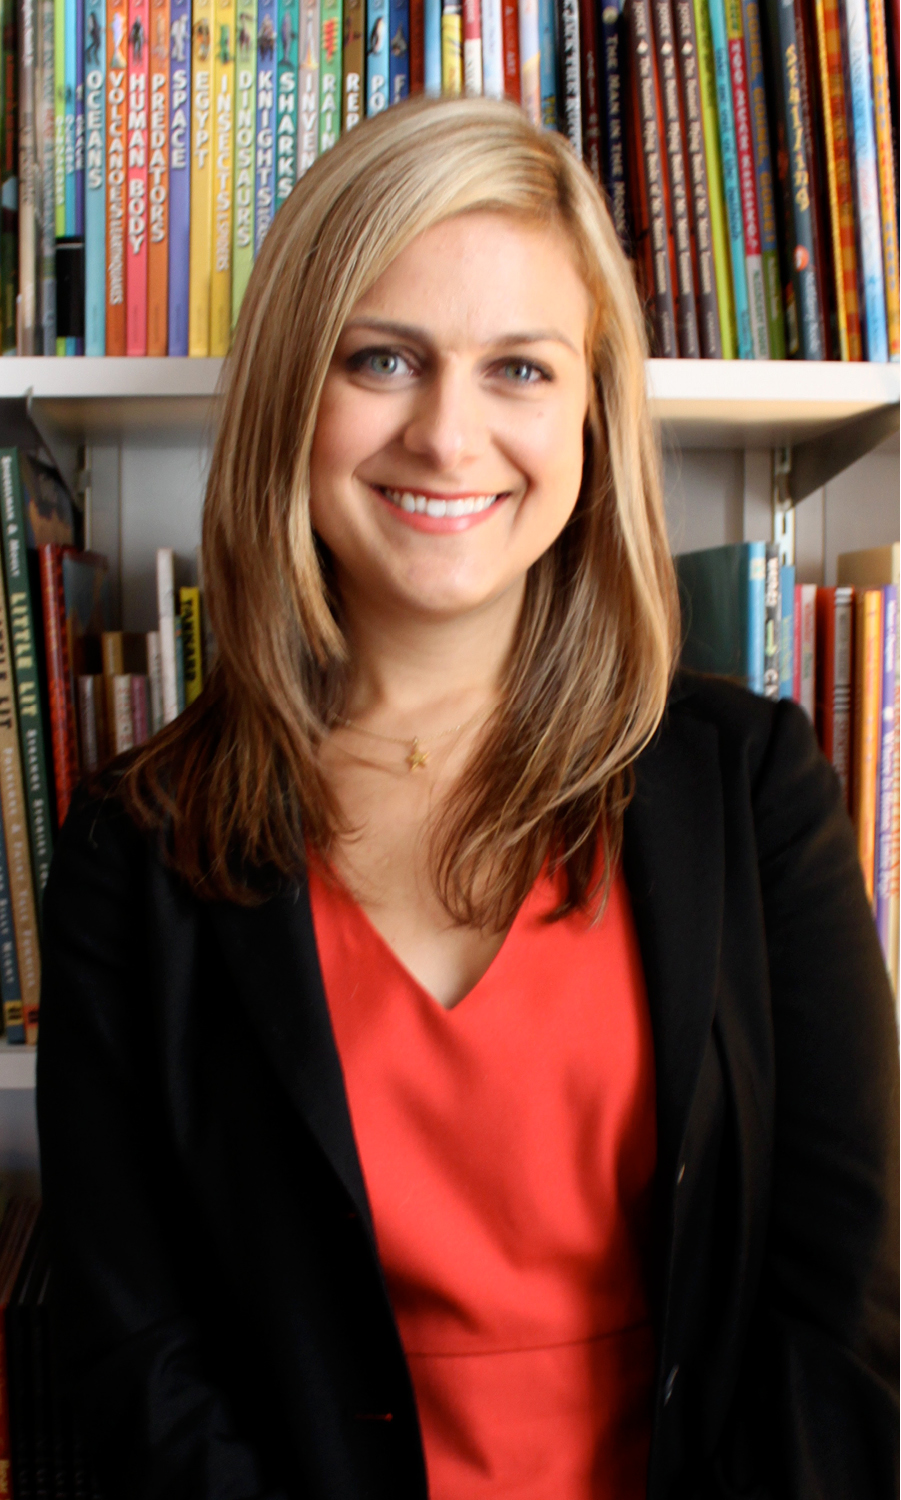 Kristin Ostby, Editor, Simon & Schuster Books for Young Readers